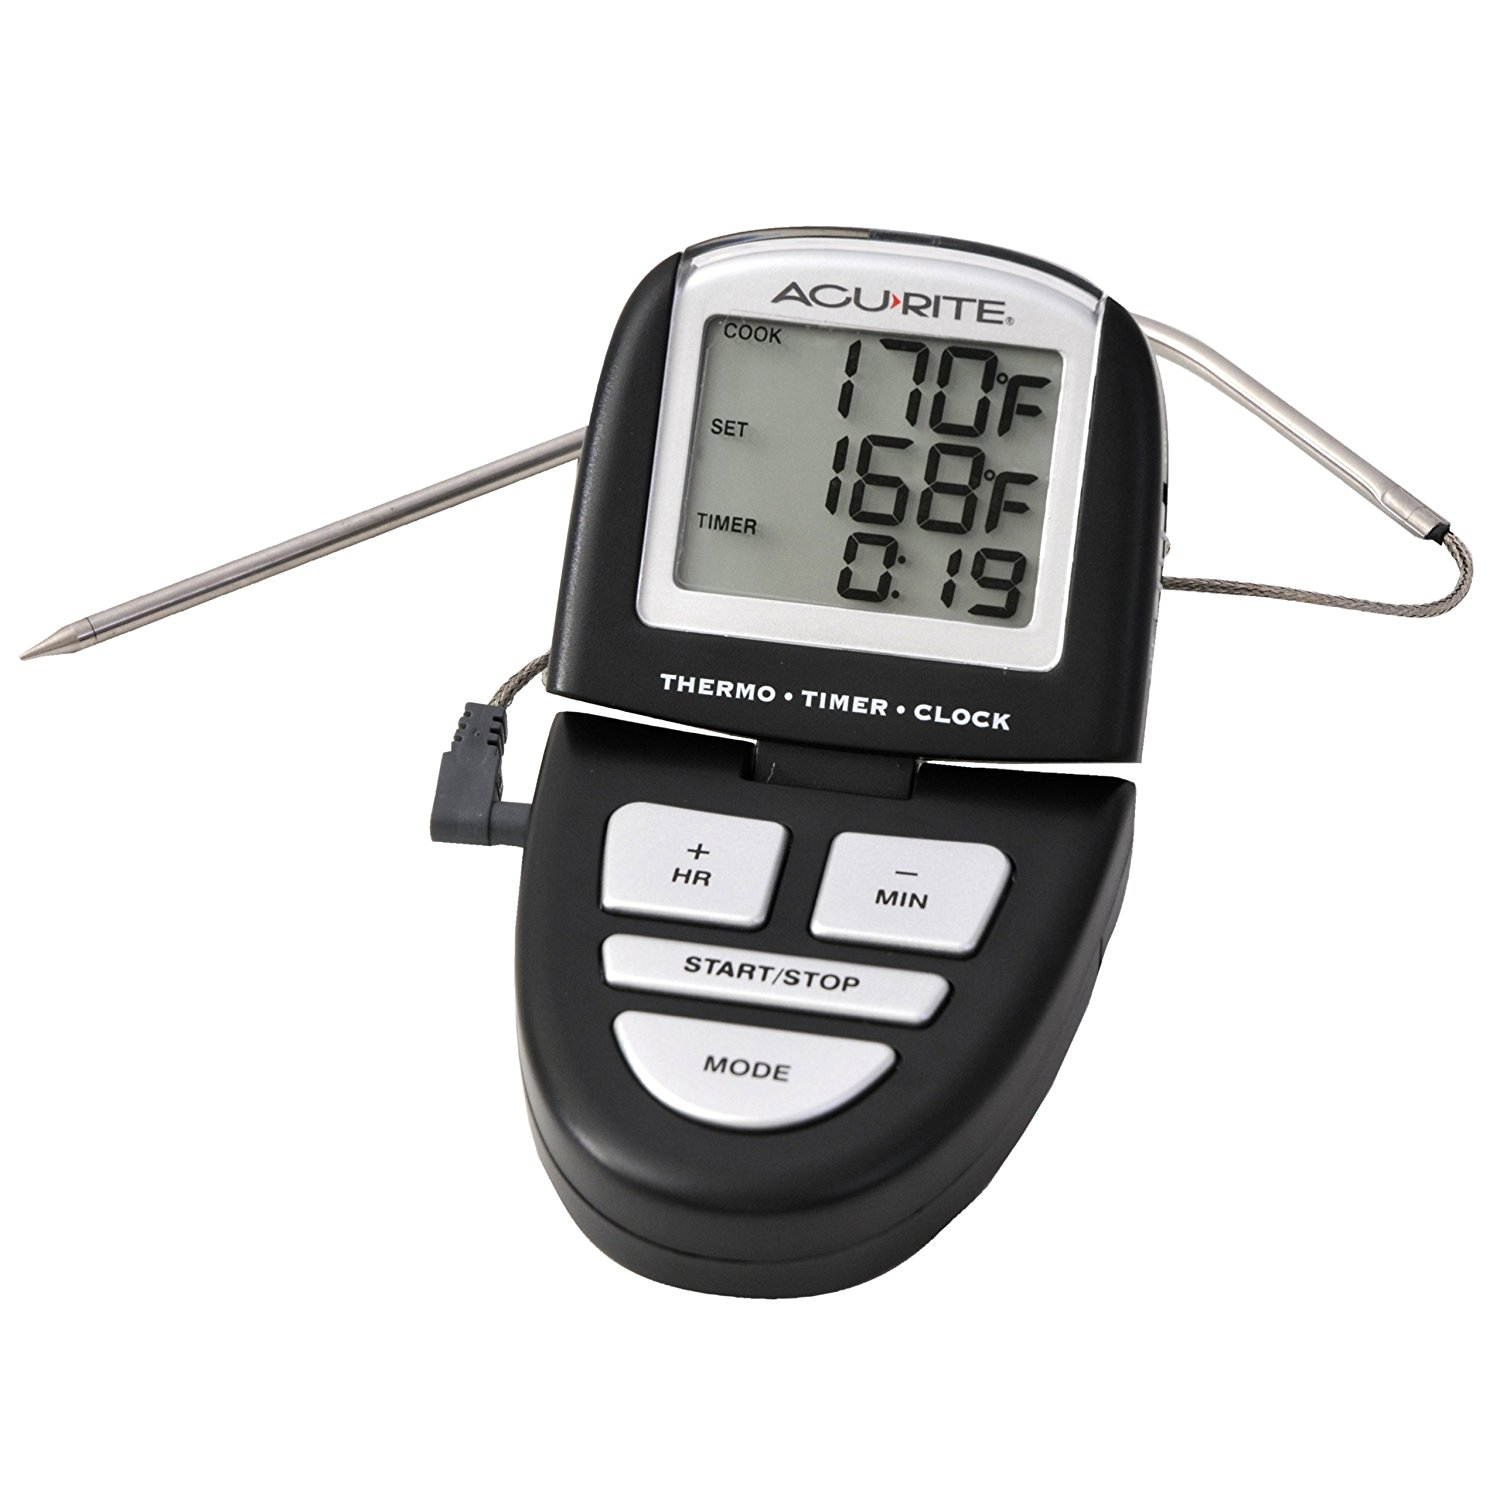 acu rite programmable digital grill thermometer timer. Black Bedroom Furniture Sets. Home Design Ideas